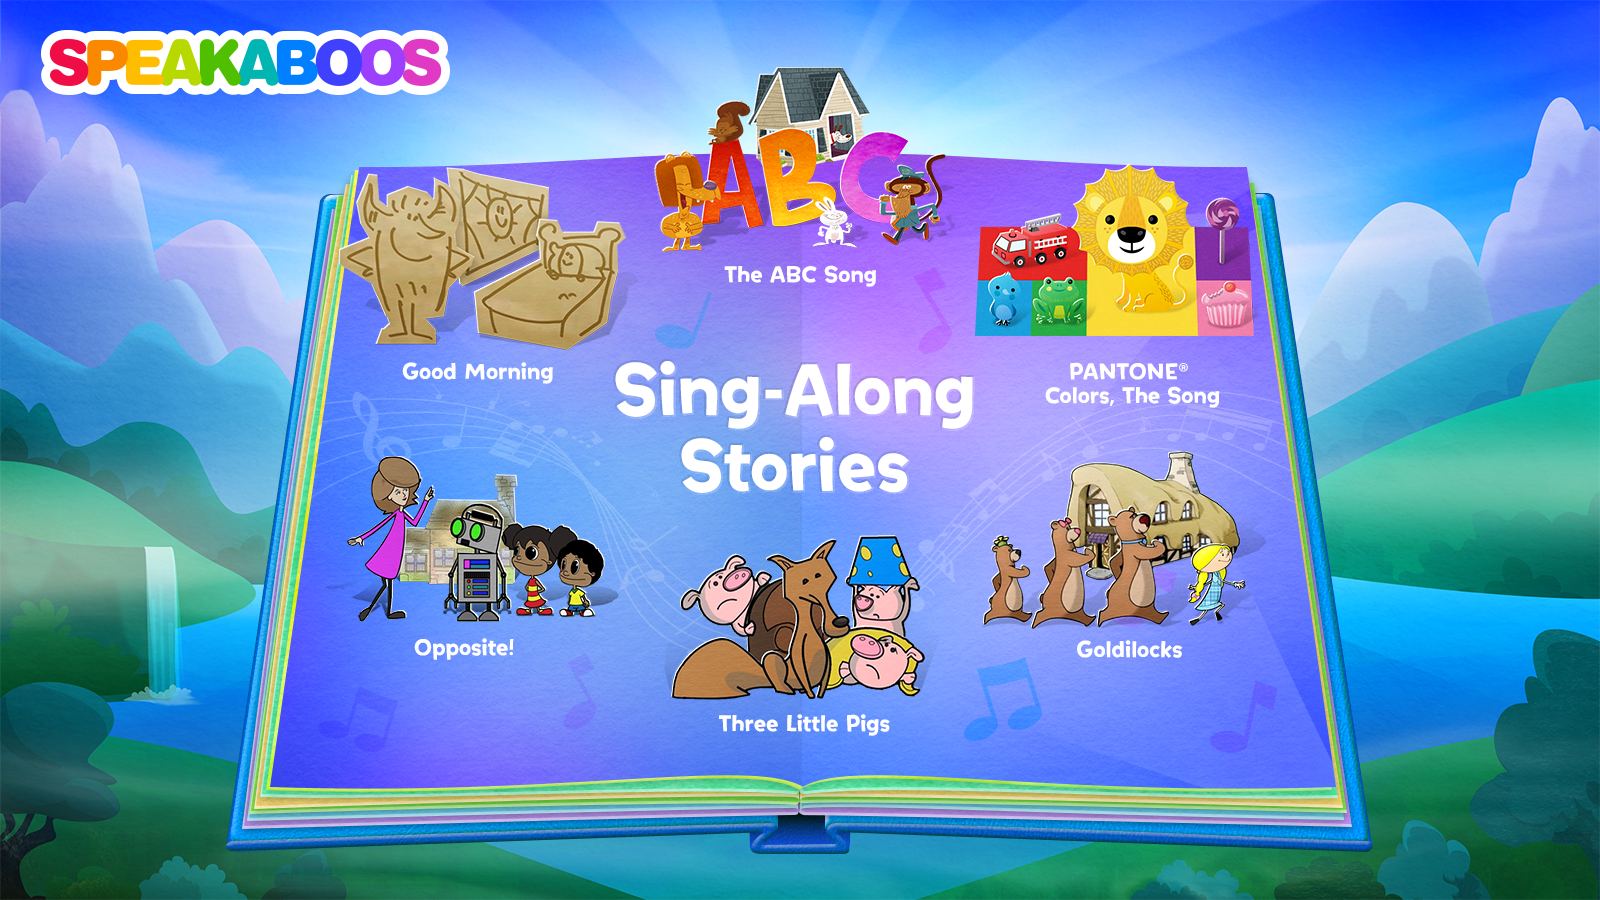 Sing-Along Stories is also another offering for Delta's child passengers. Image Speakaboos